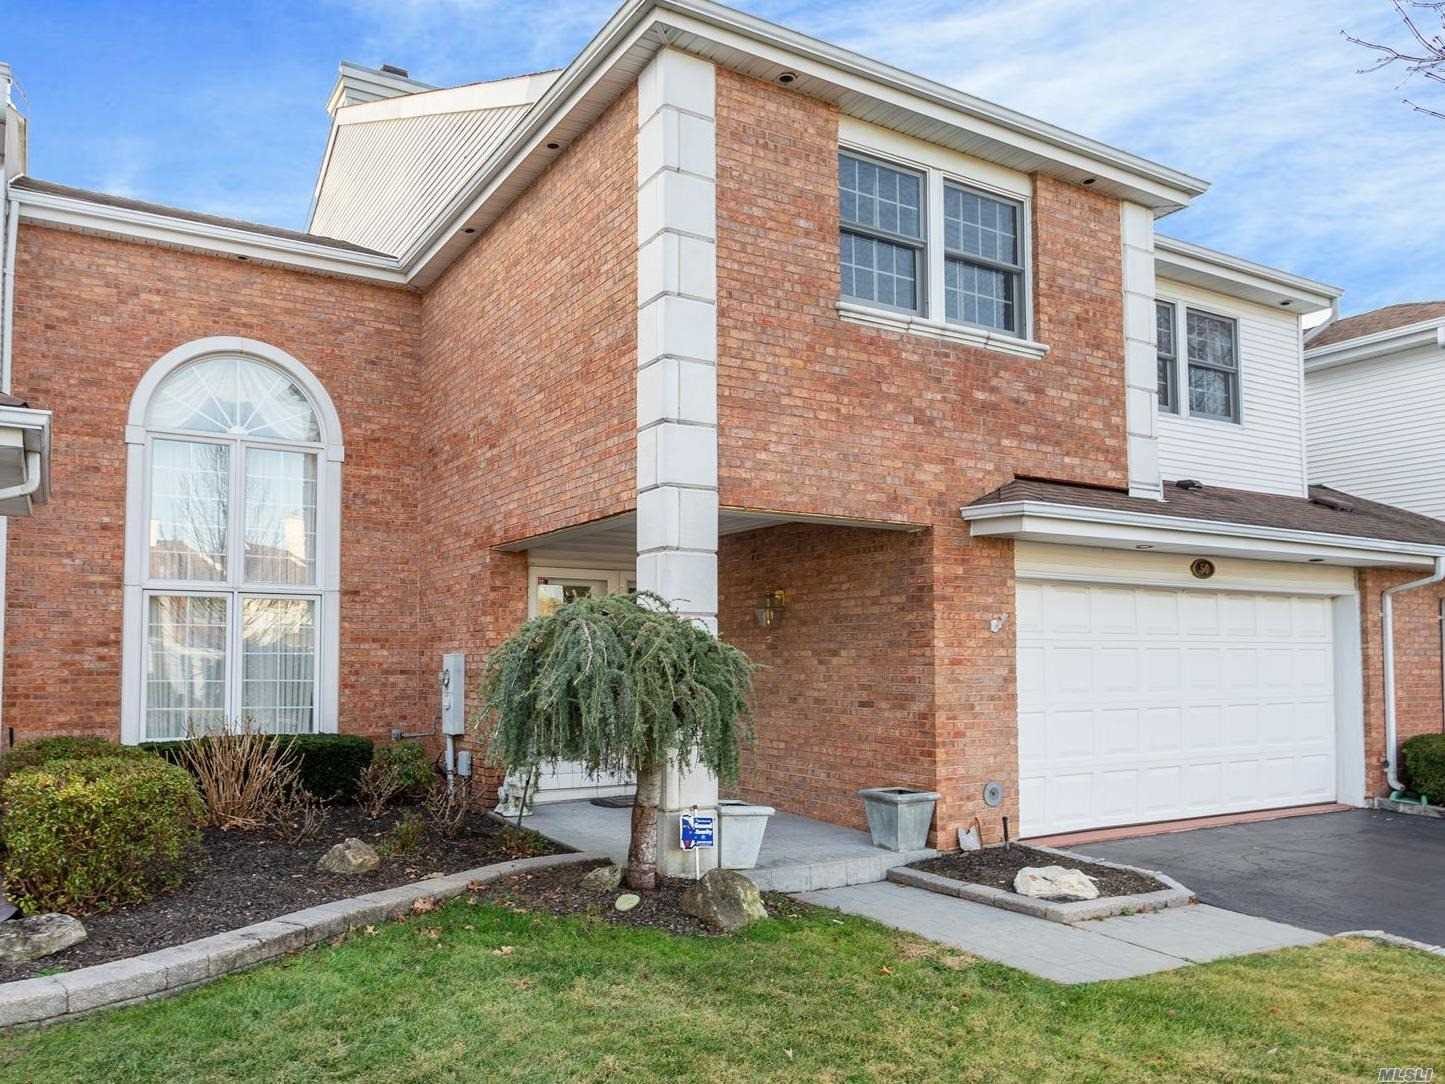 Property for sale at 50 Hamlet Drive, Commack NY 11725, Commack,  New York 11725